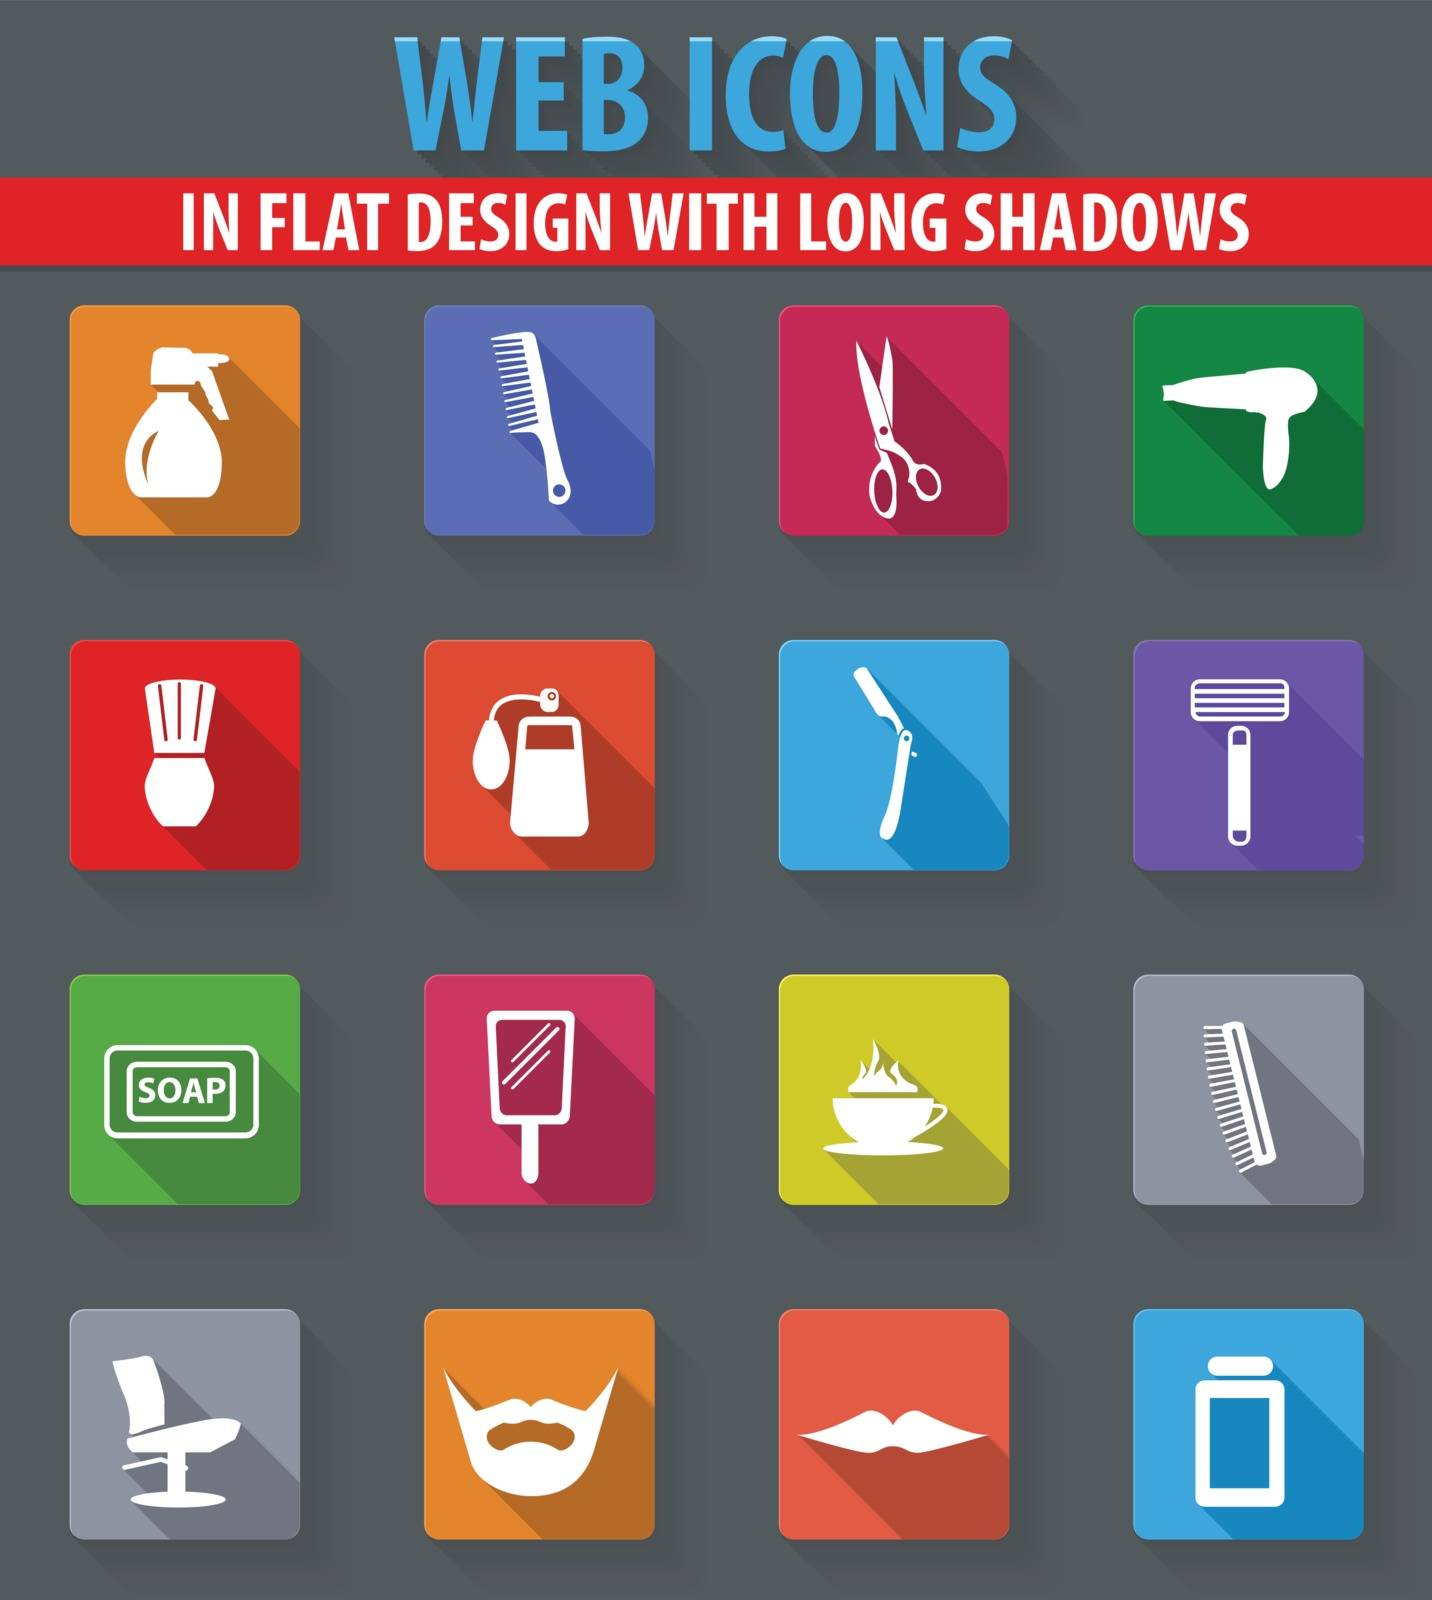 It is a set of barbershop web icons in flat design with long shadows